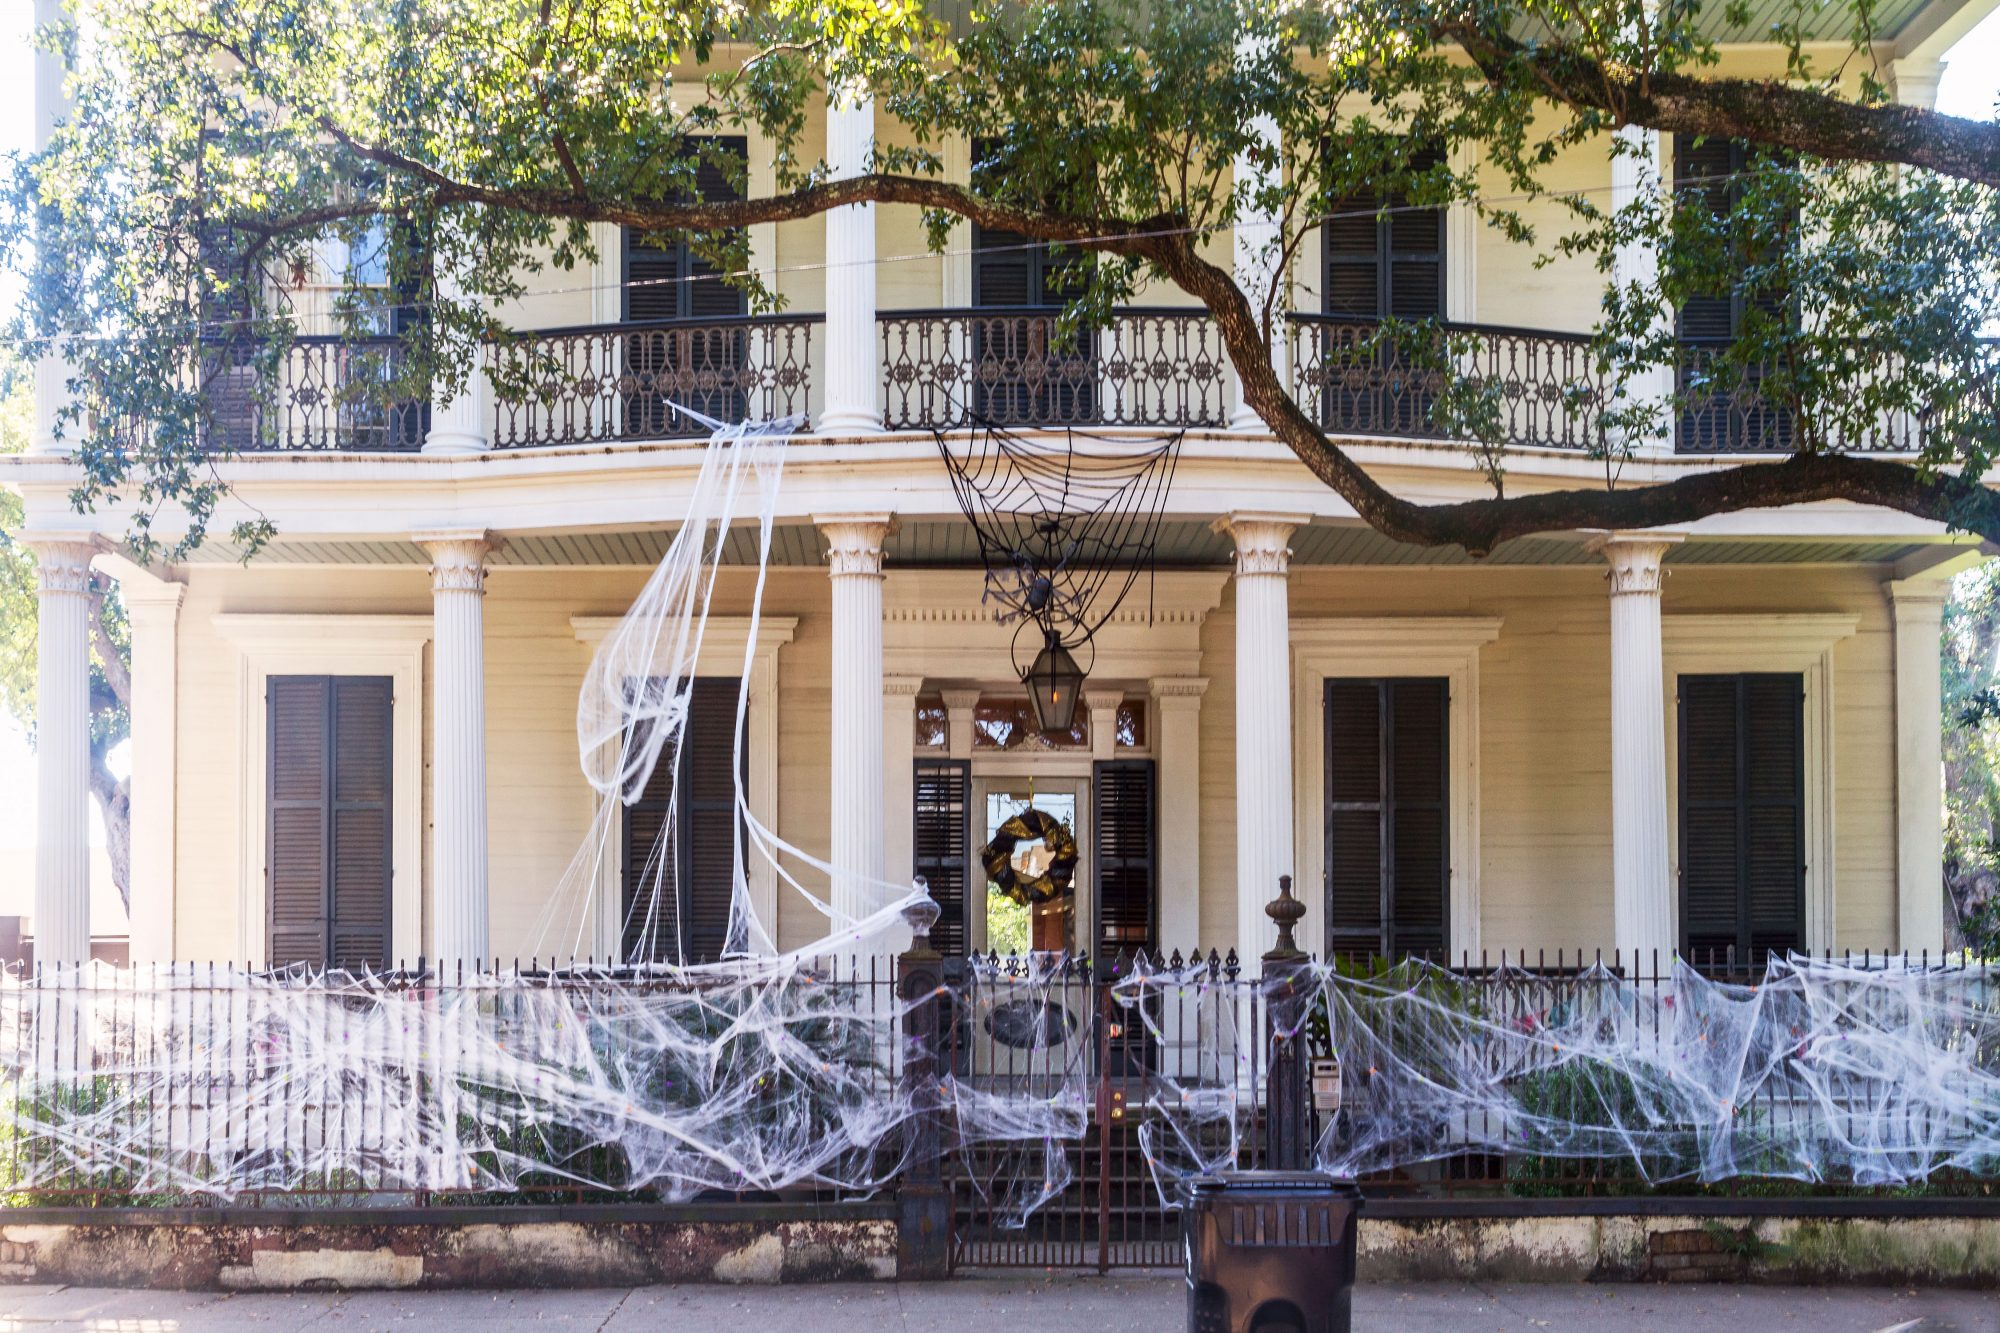 NOLA Garden District Mansion for Halloween